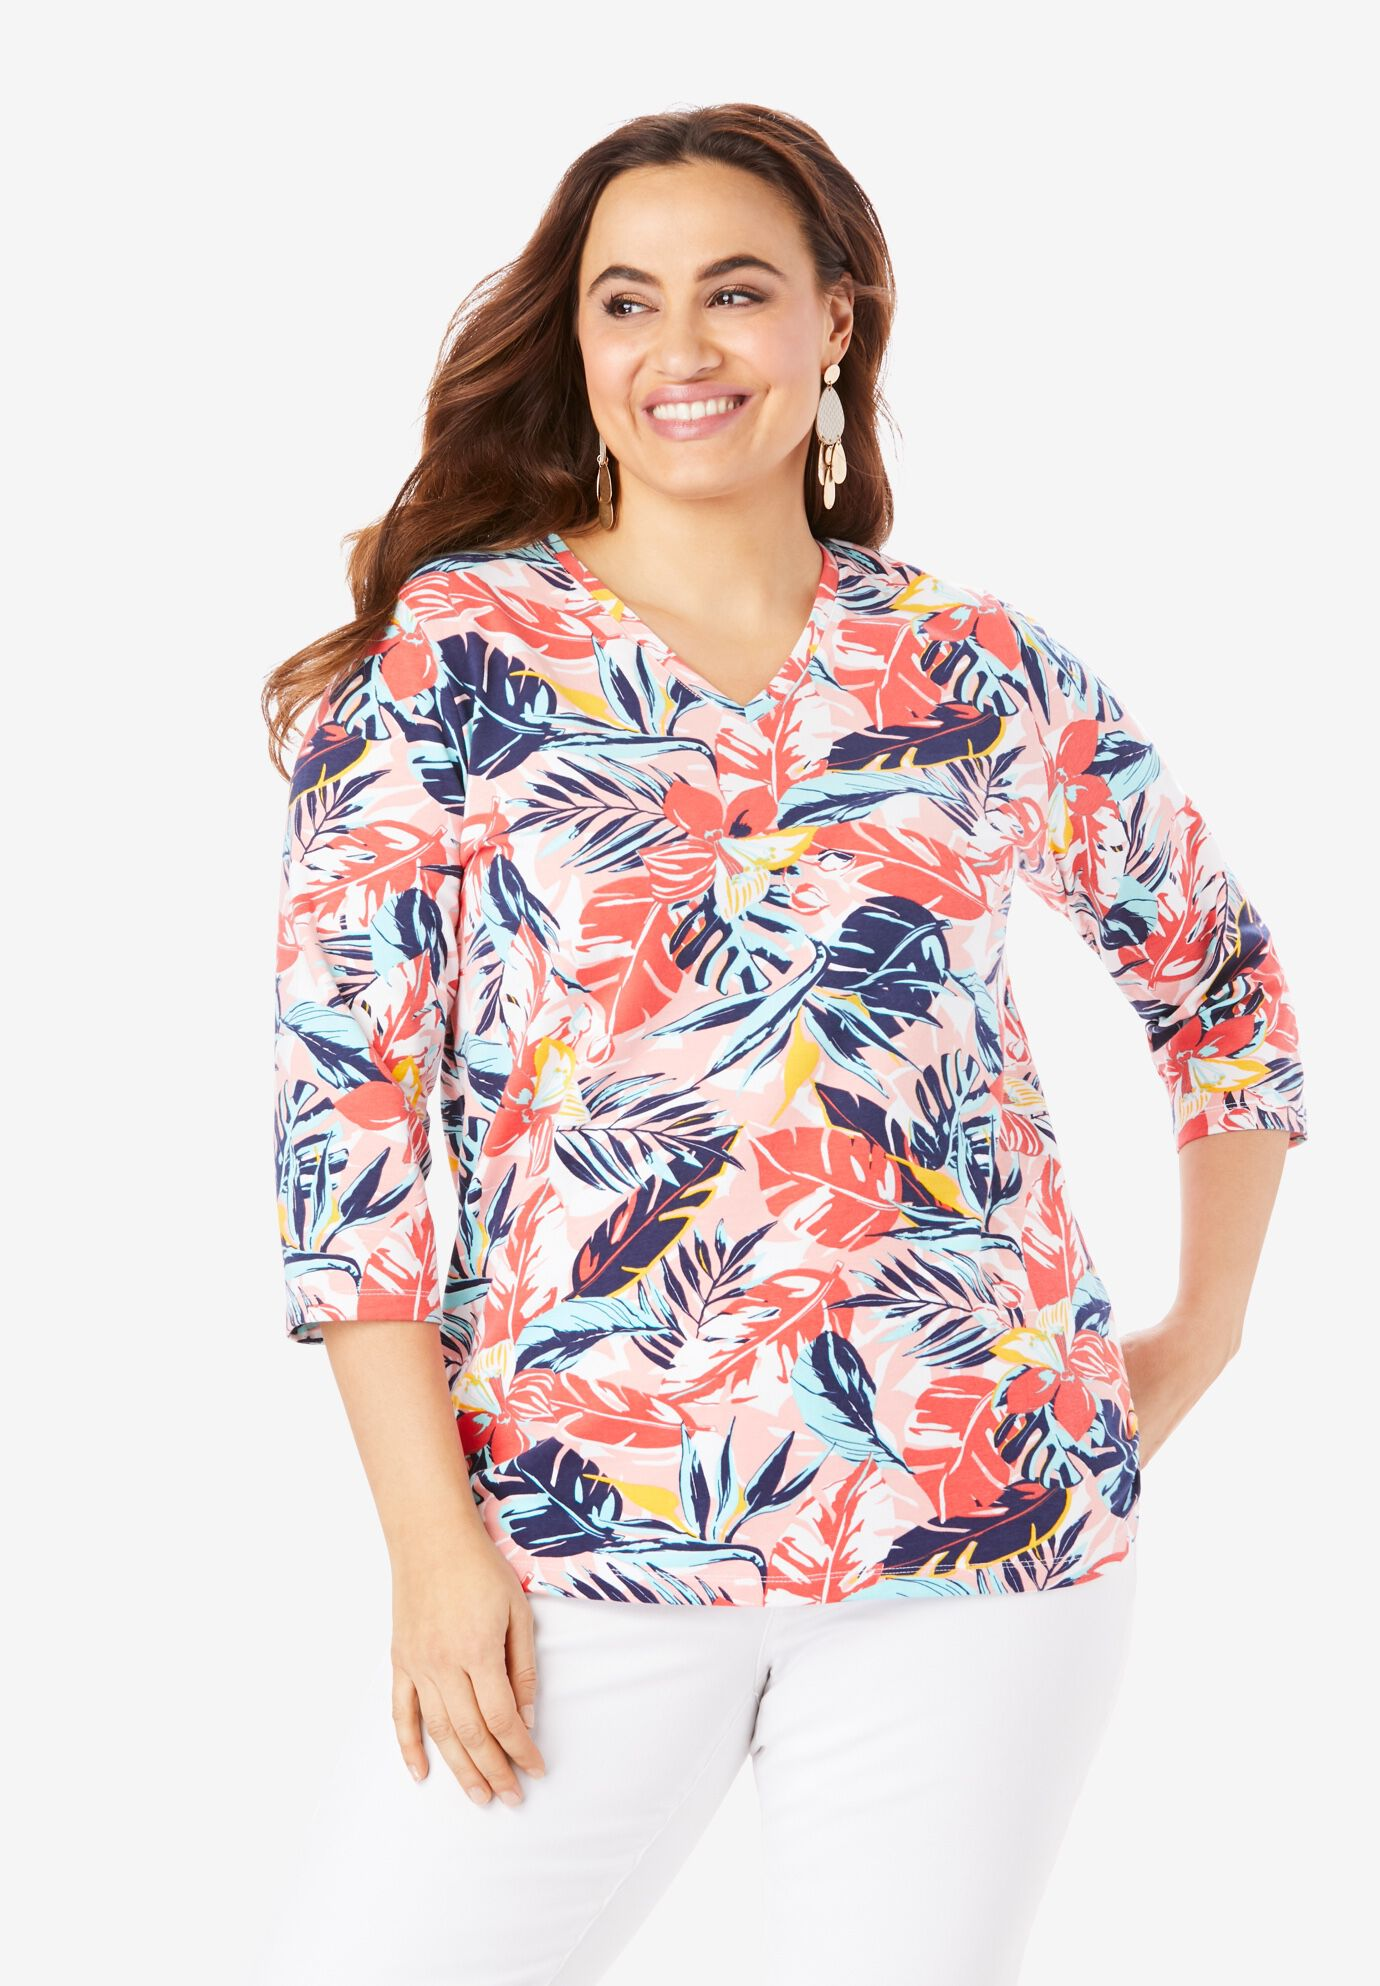 Plus Size Border Print Top 3//4 Length Bell Sleeves Sofo Curves size 16 to 36 NEW